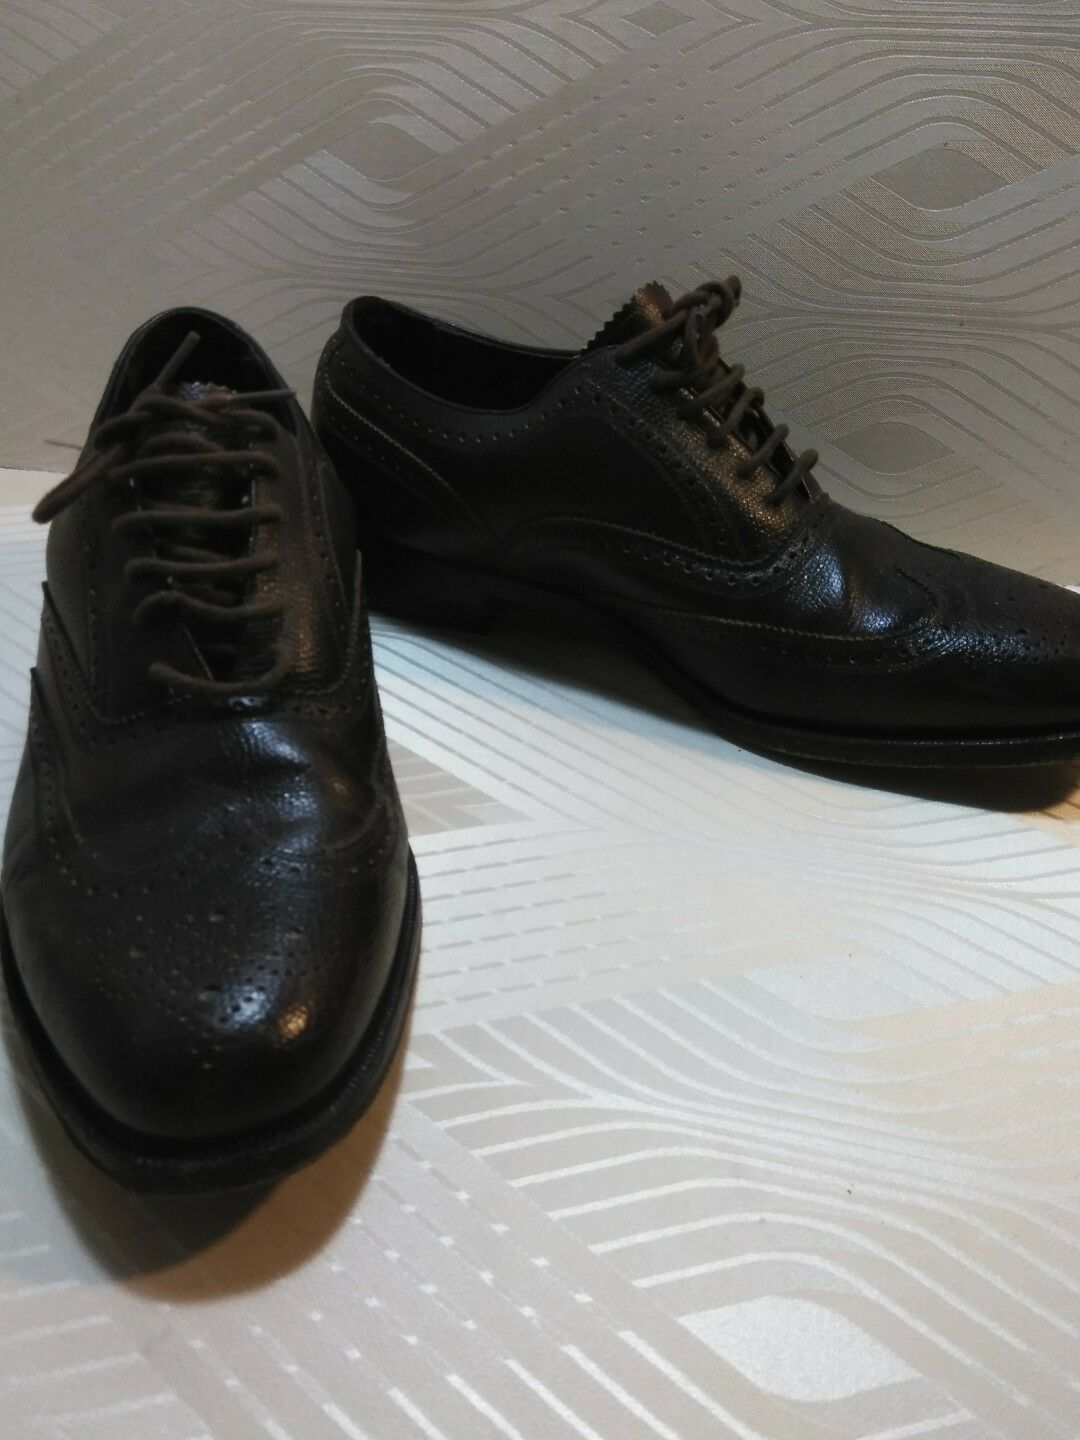 Florsheim Imperial Brown leather Size 10.5 shoes